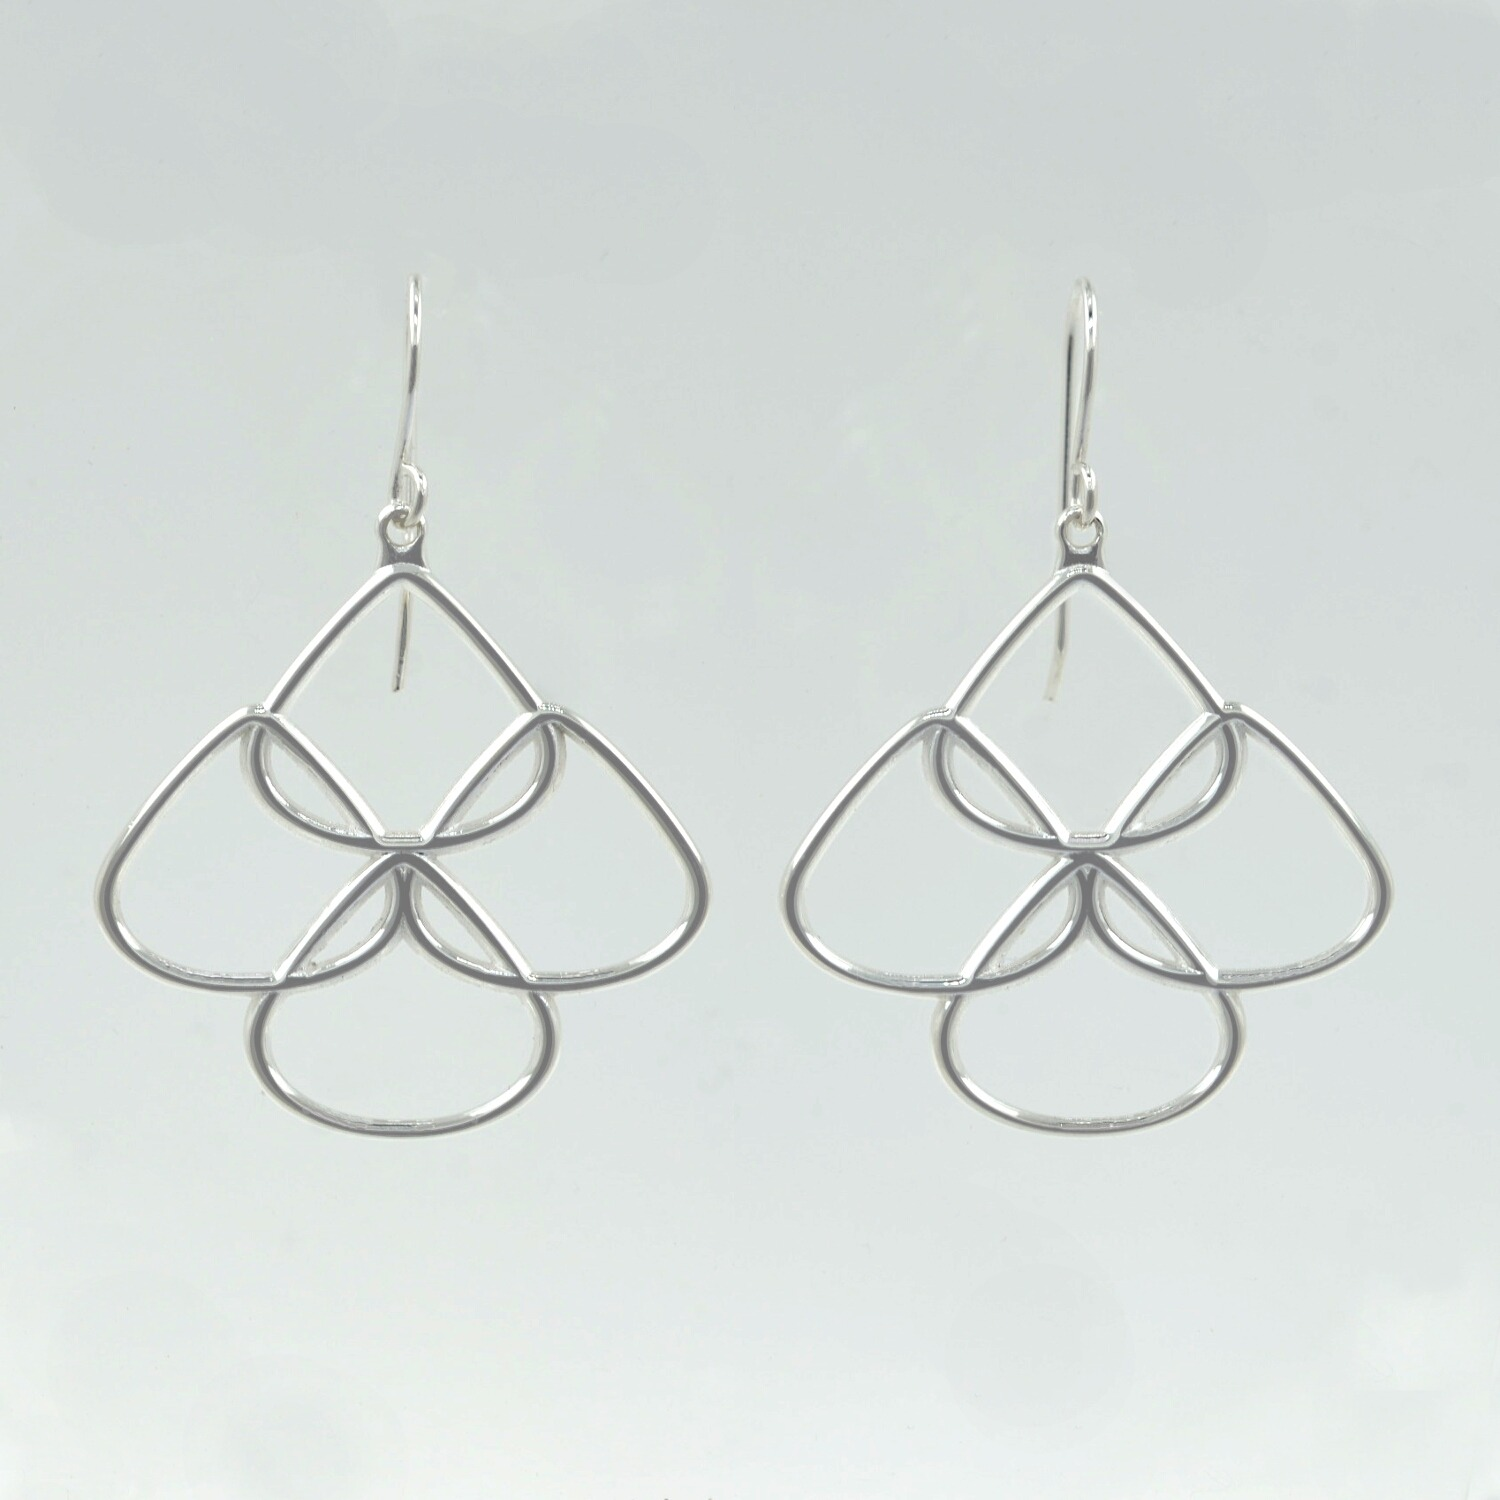 Sterling silver chandelier earrings rionore jewellery sterling silver chandelier earrings aloadofball Images